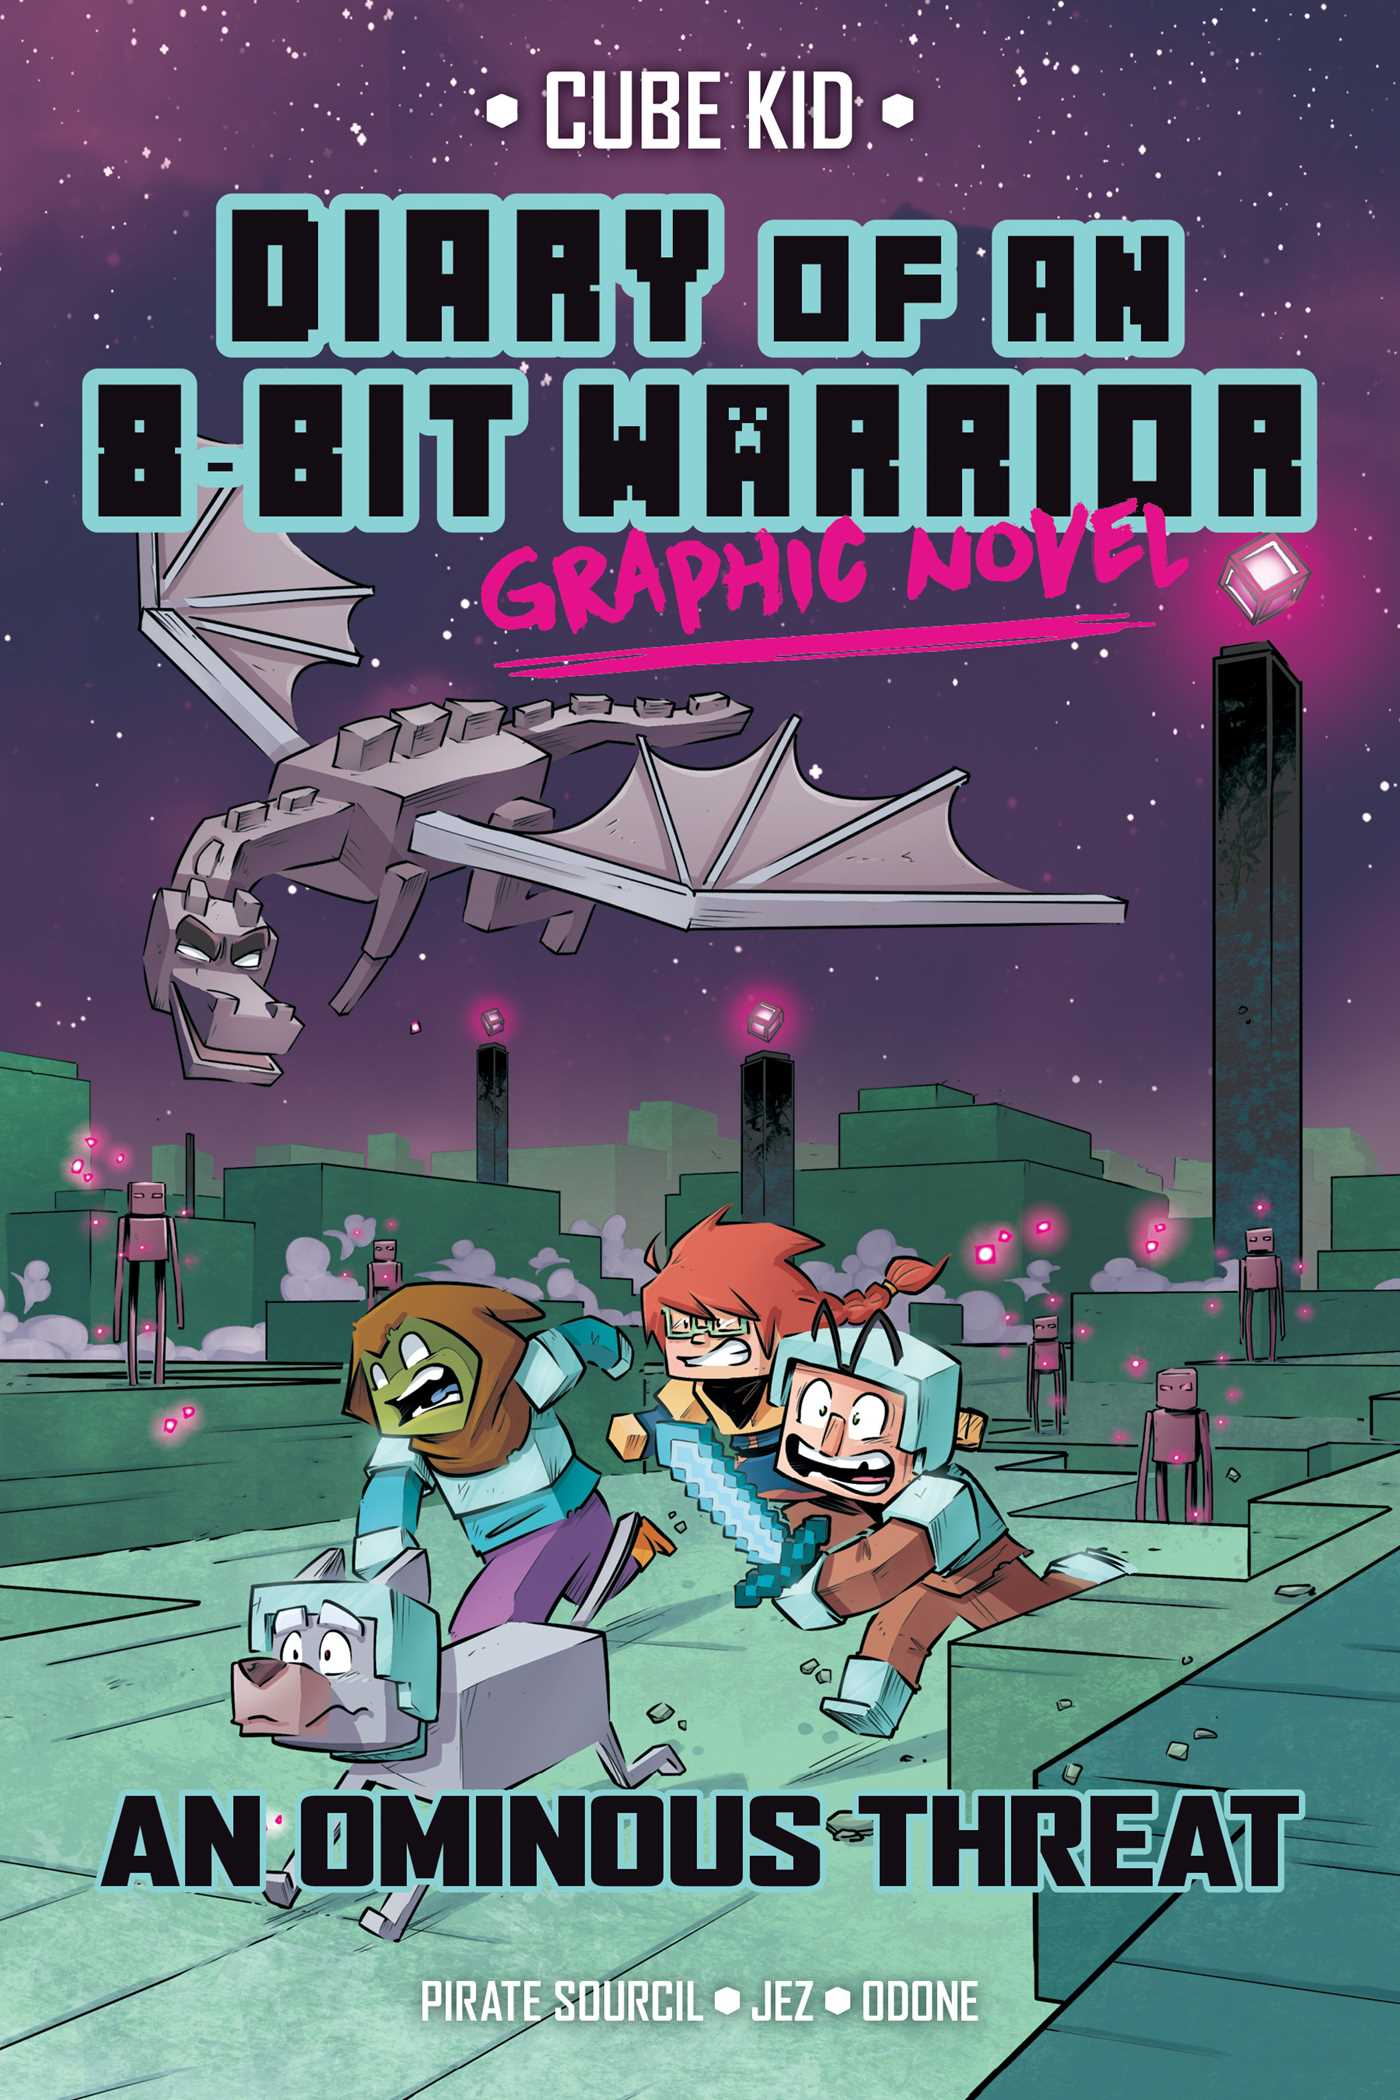 Diary of an 8-Bit Warrior Graphic Novel: An Ominous Threat, Pirate Sourcil, Jez, Odone, Children's Book, Graphic Novel, Minecraft, Adventure, Fantasy, Magic, Zombies, Friendship,Dragon, Enders,